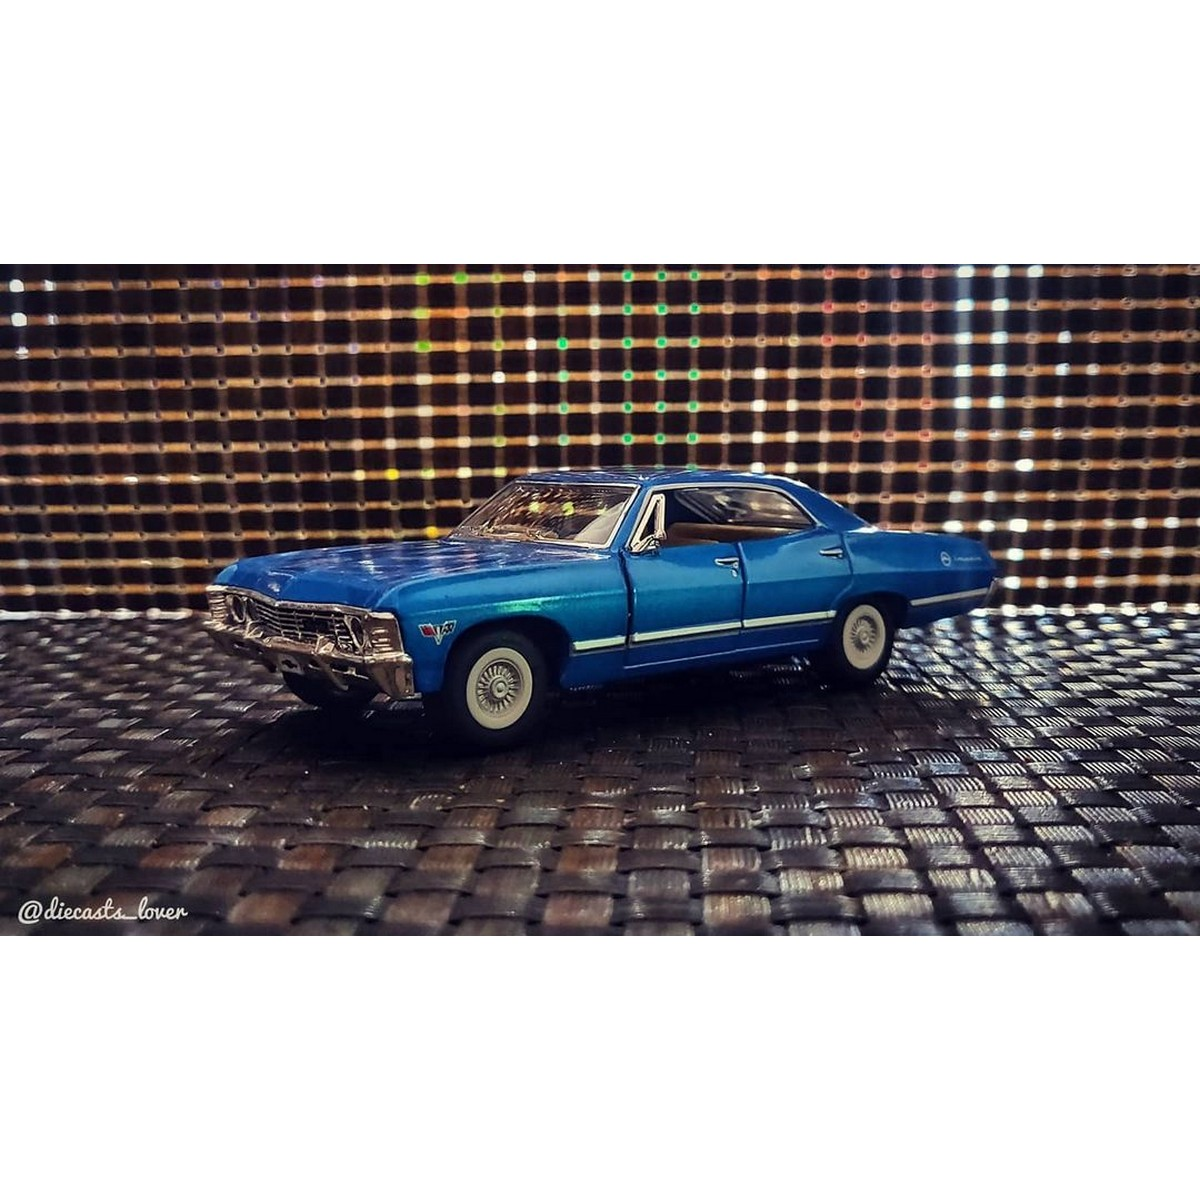 Kinsmart 1967 Chevrolet Impala Scale 1:43 diecast - 5 inches